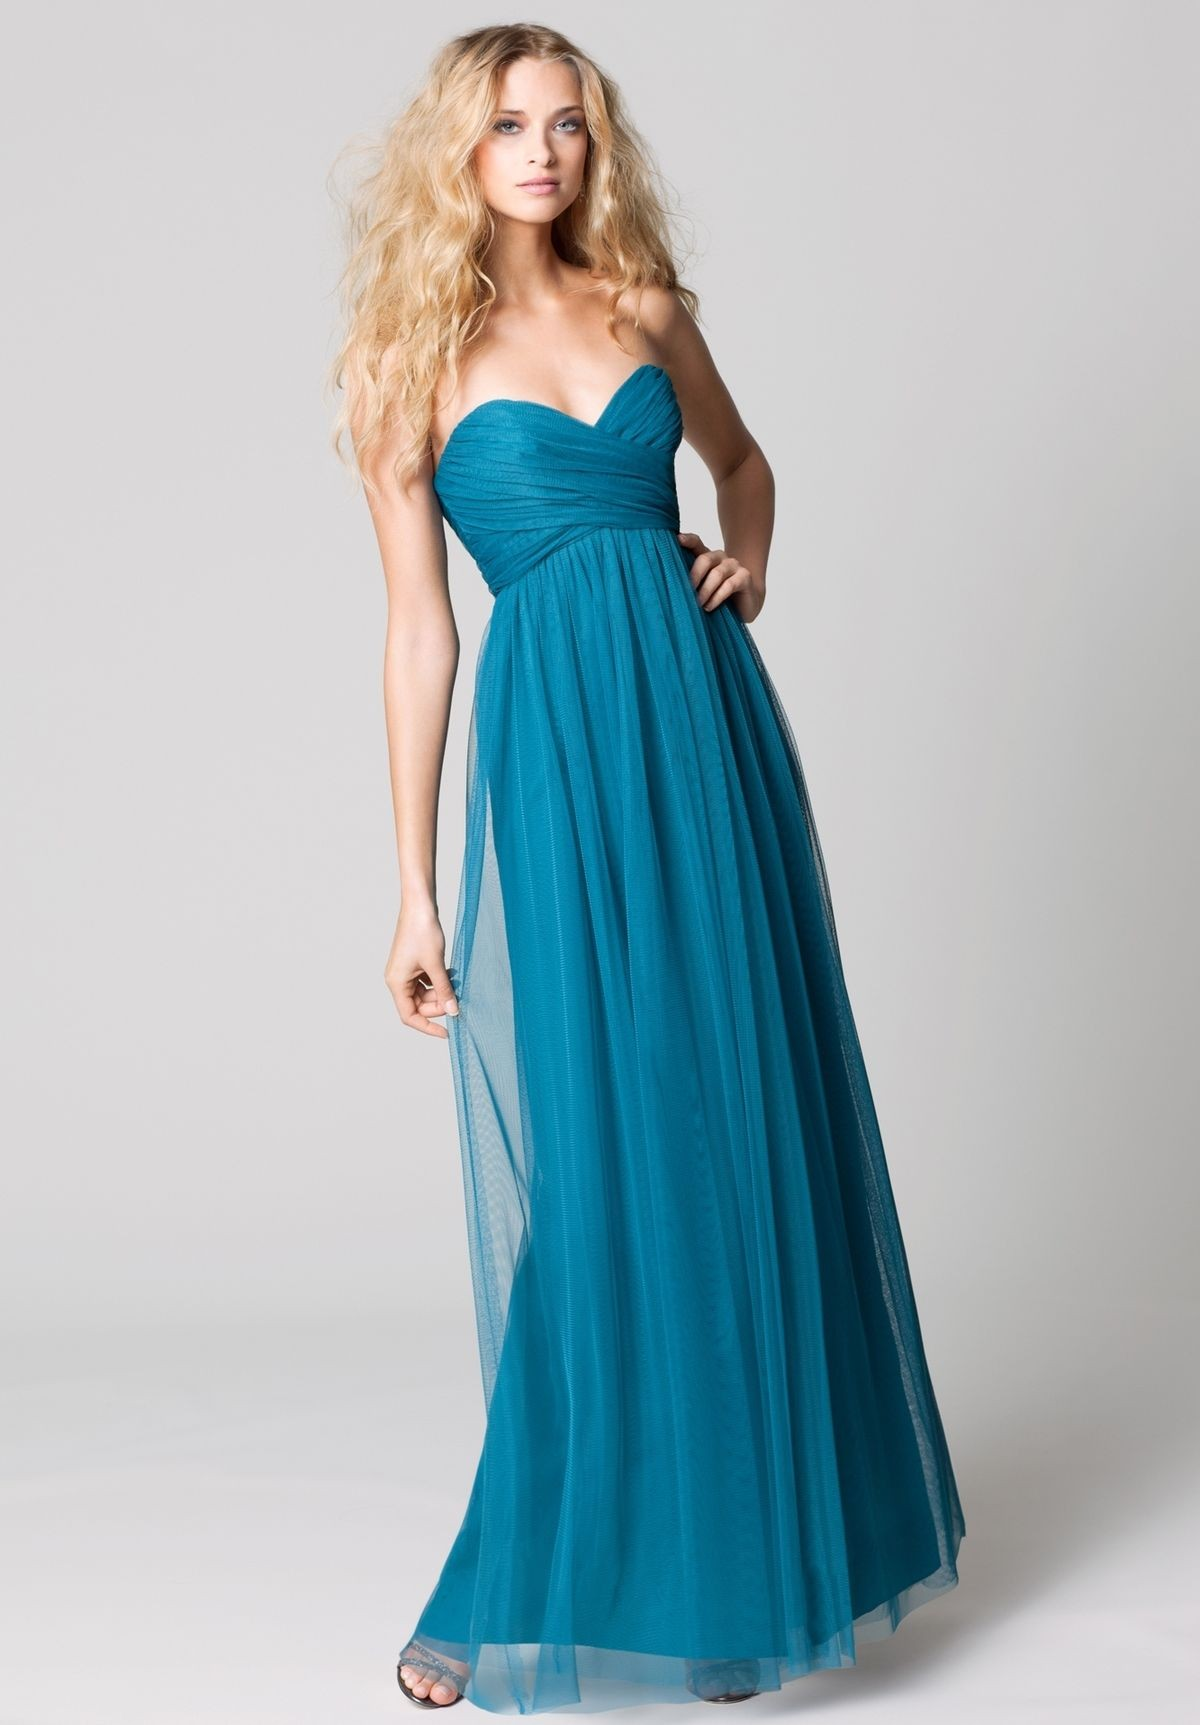 blue Bridesmaid Dresses 2015